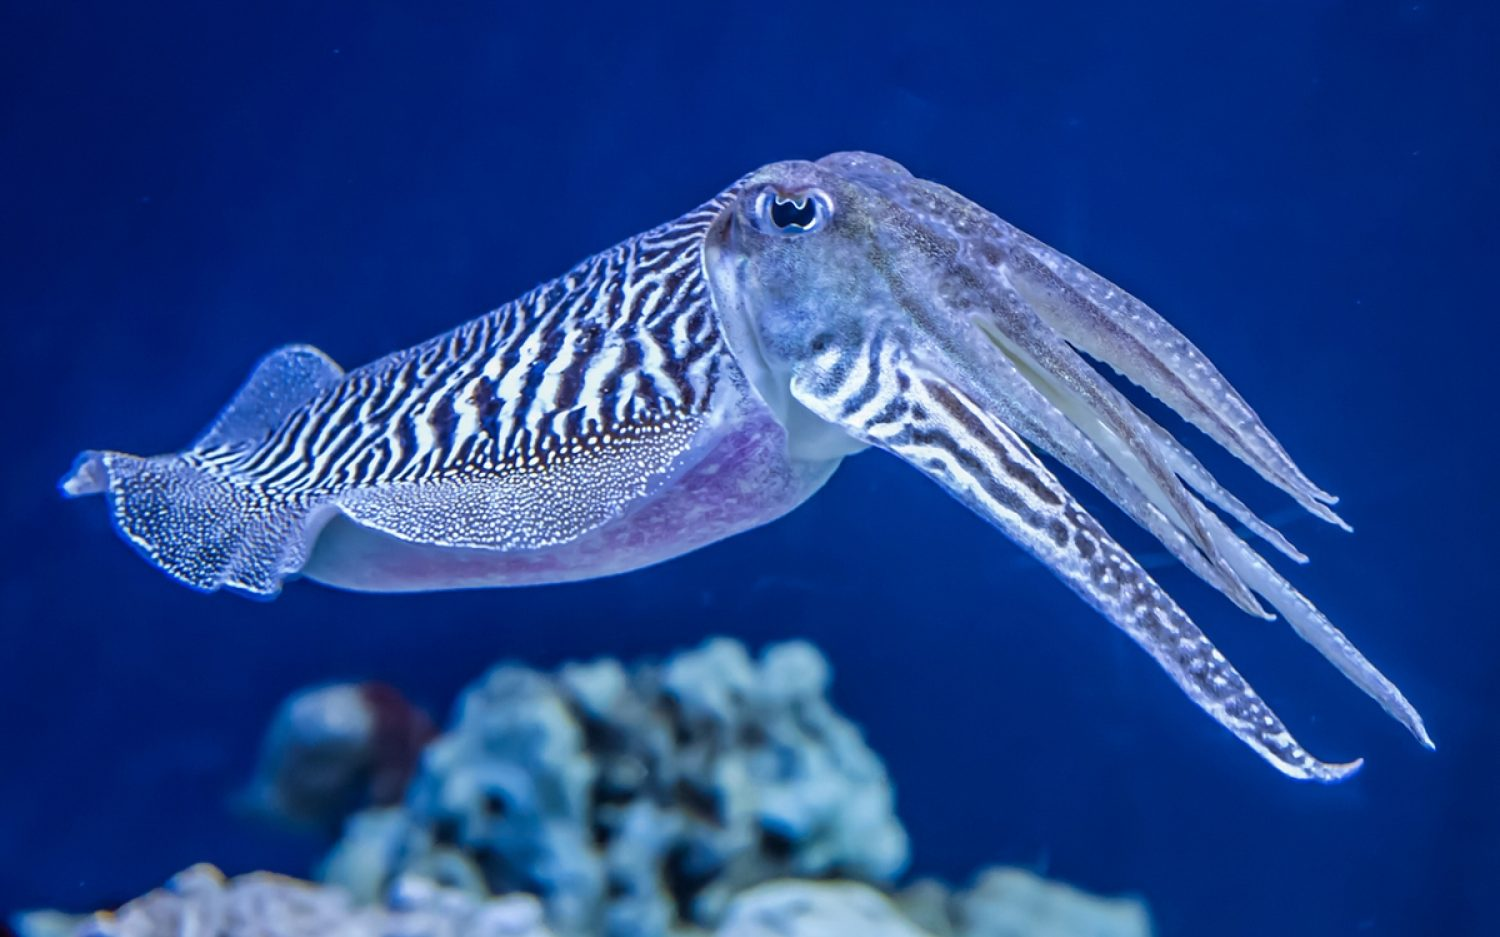 A very patient cuttlefish